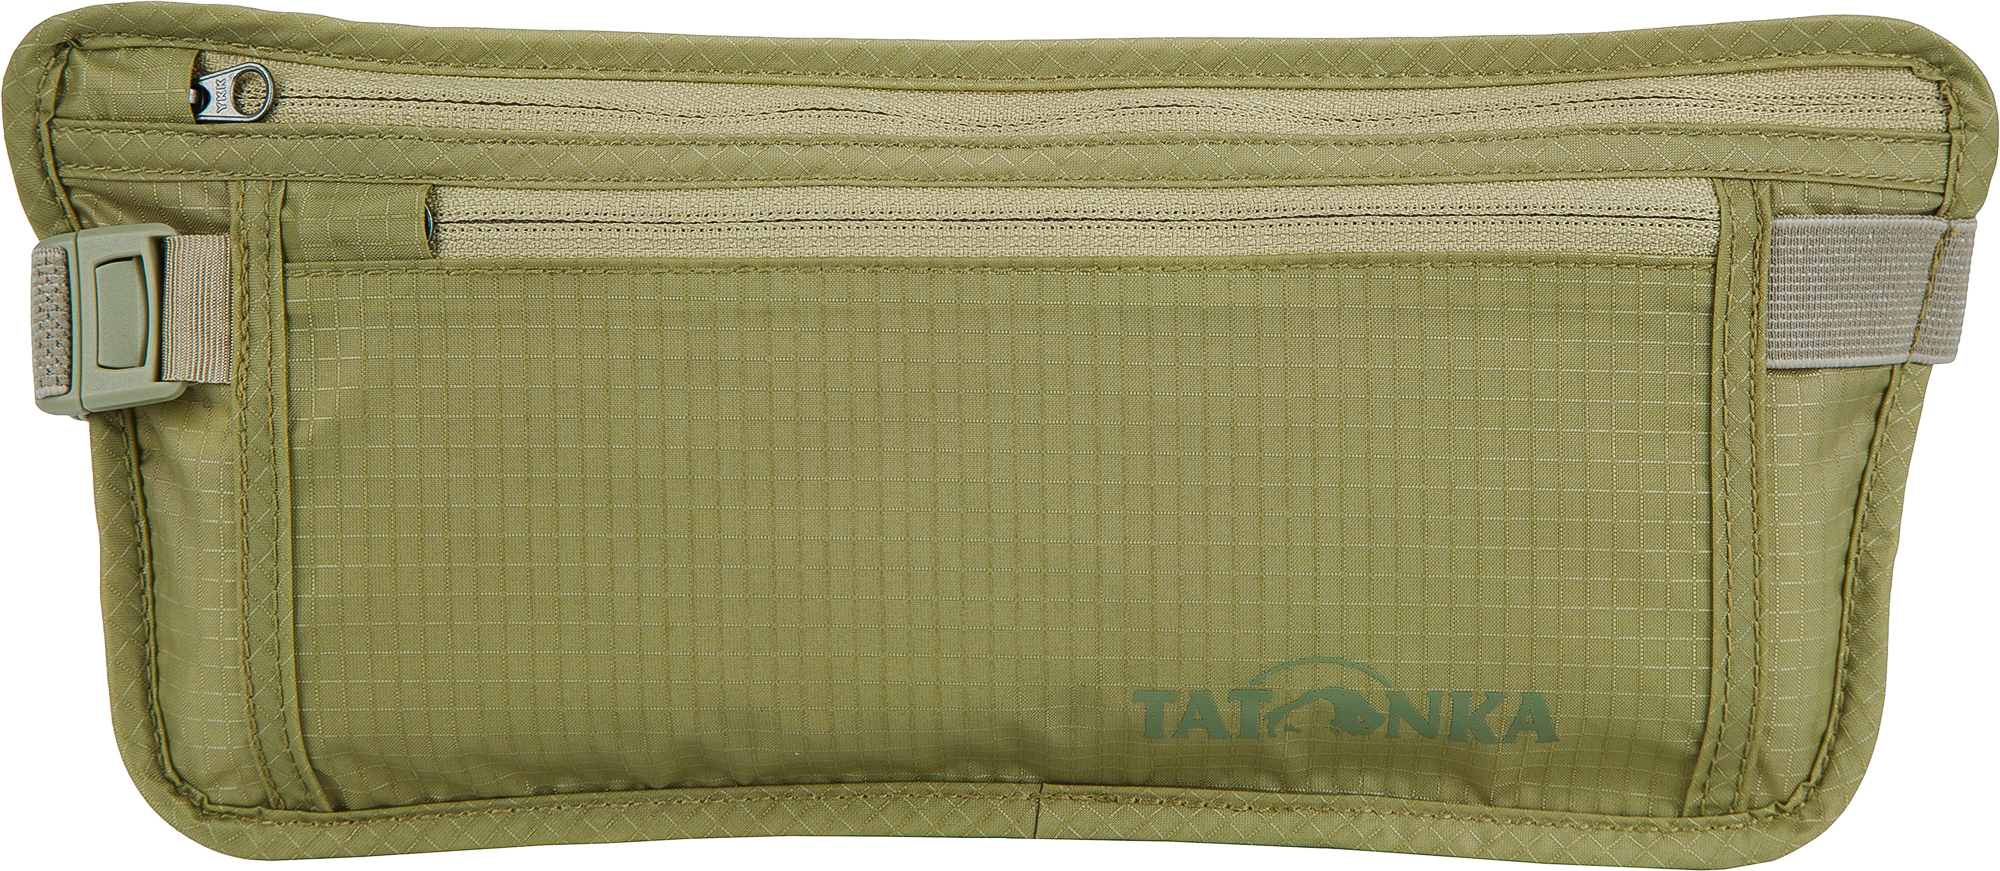 Tatonka Кошелек Tatonka SKIN MONEY BELT цены